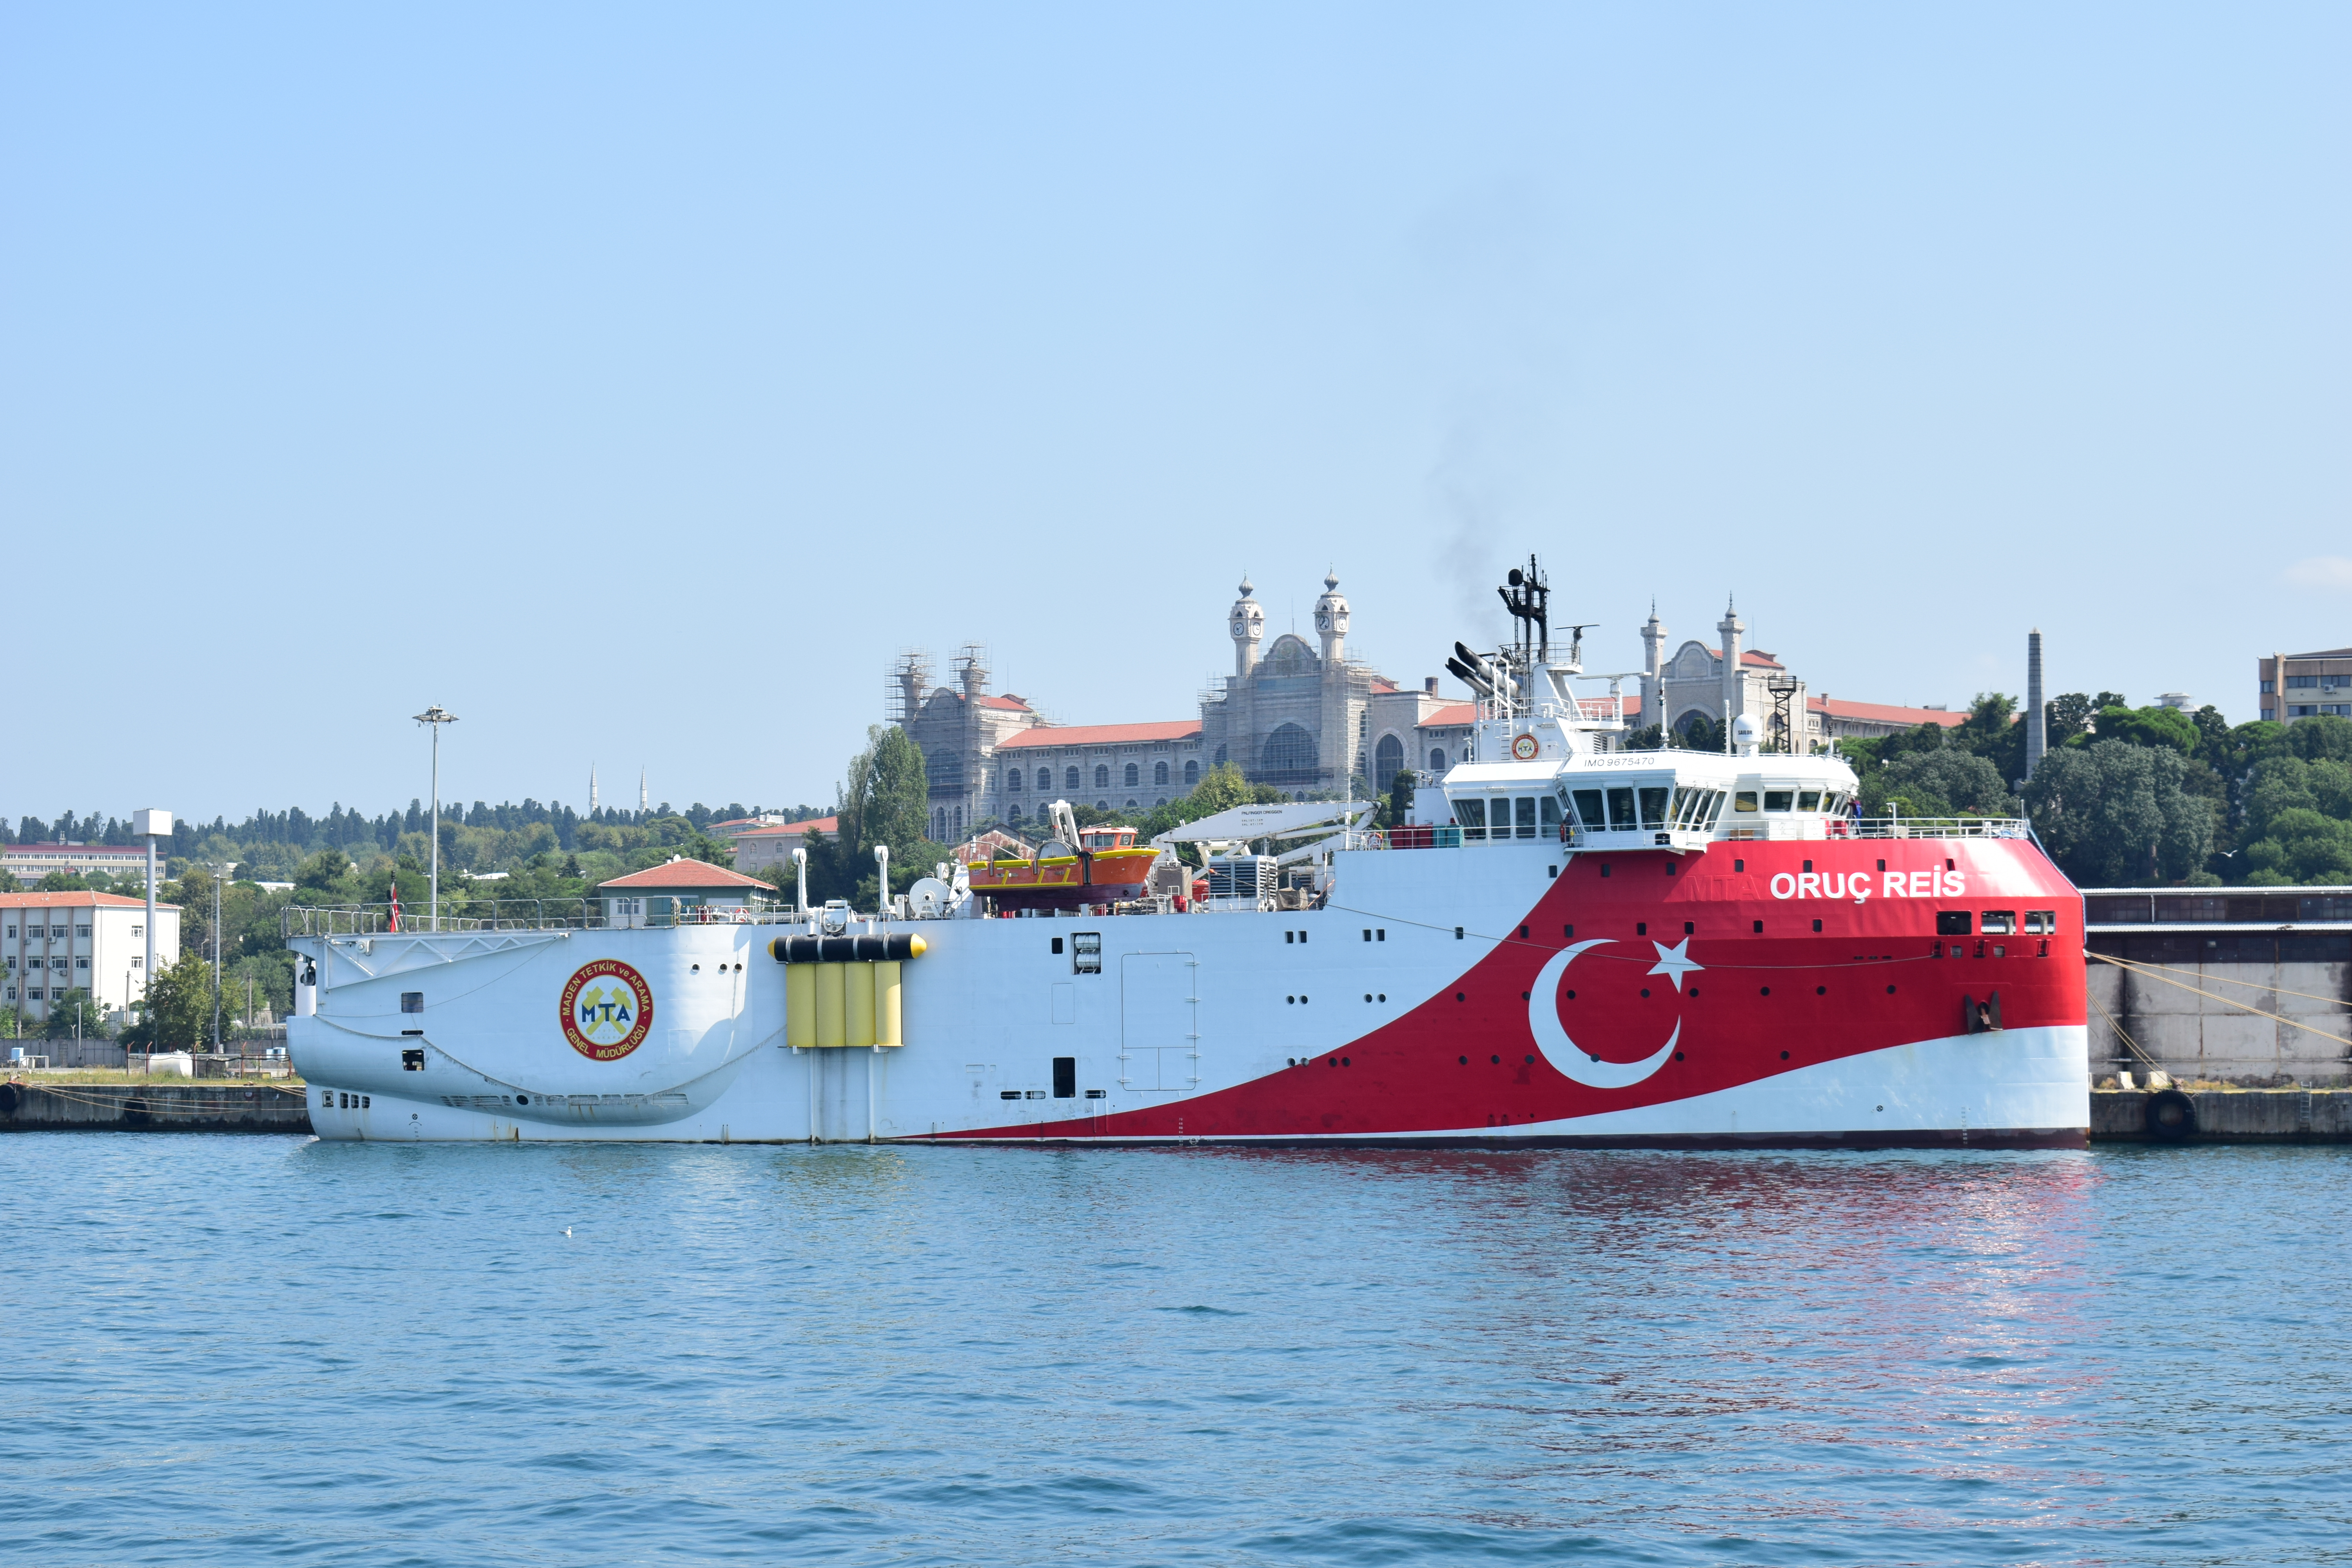 The ECR group expresses its concern with Turkey's actions in the Eastern Mediterranean